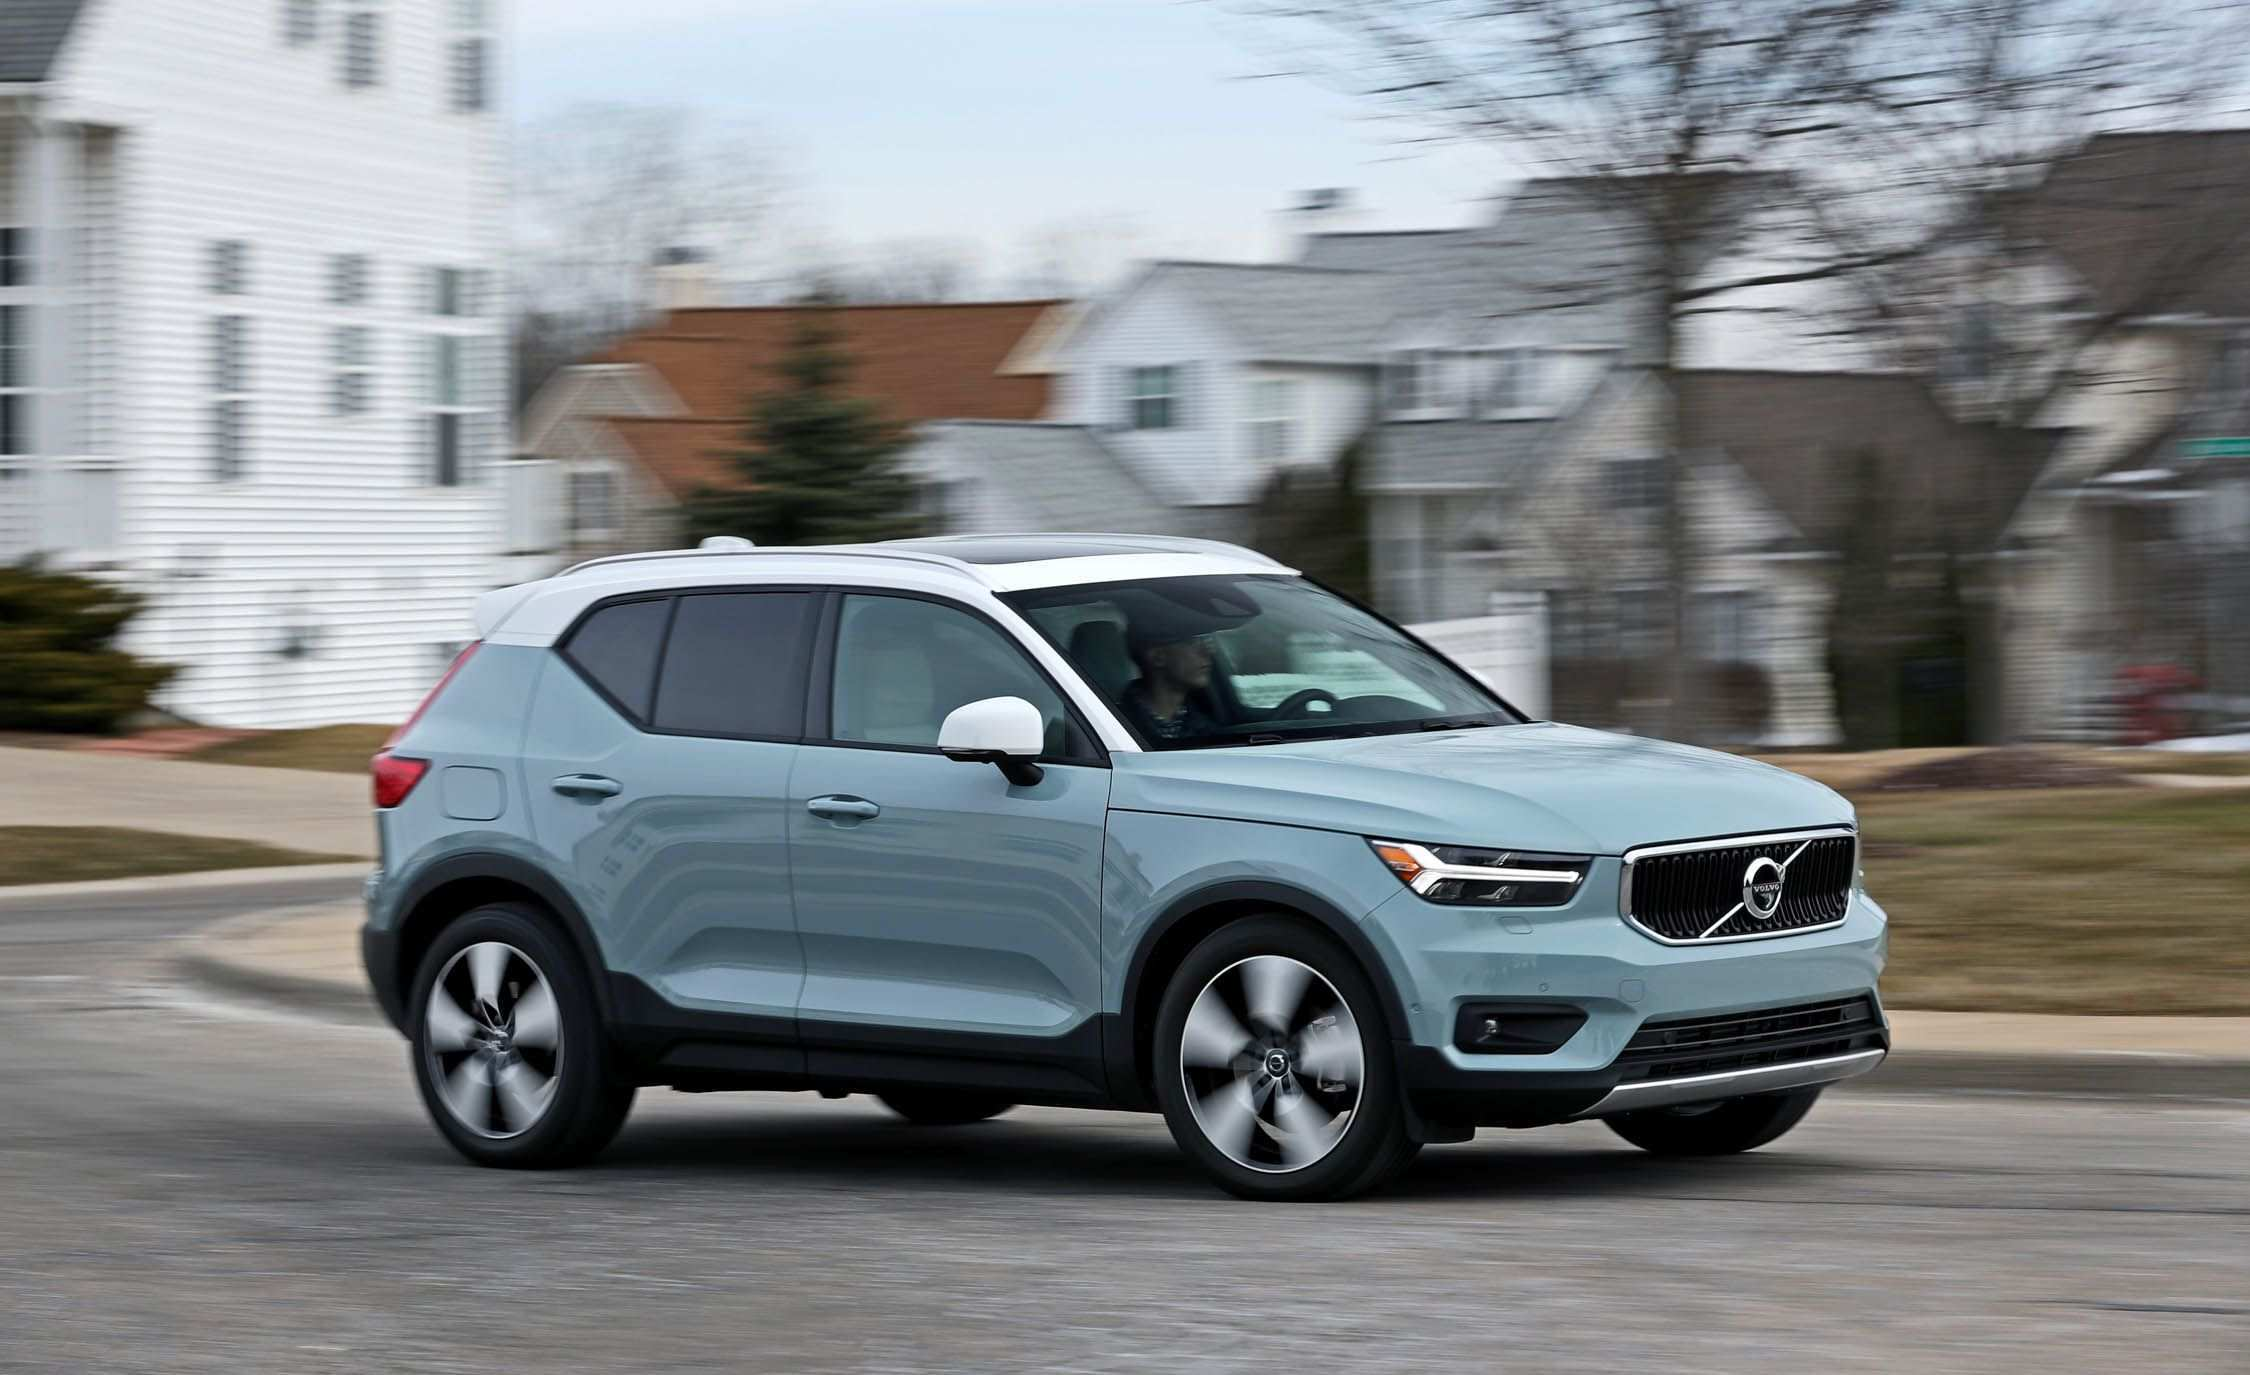 59 All New Volvo Xc40 Dimensions 2019 Exterior and Interior by Volvo Xc40 Dimensions 2019